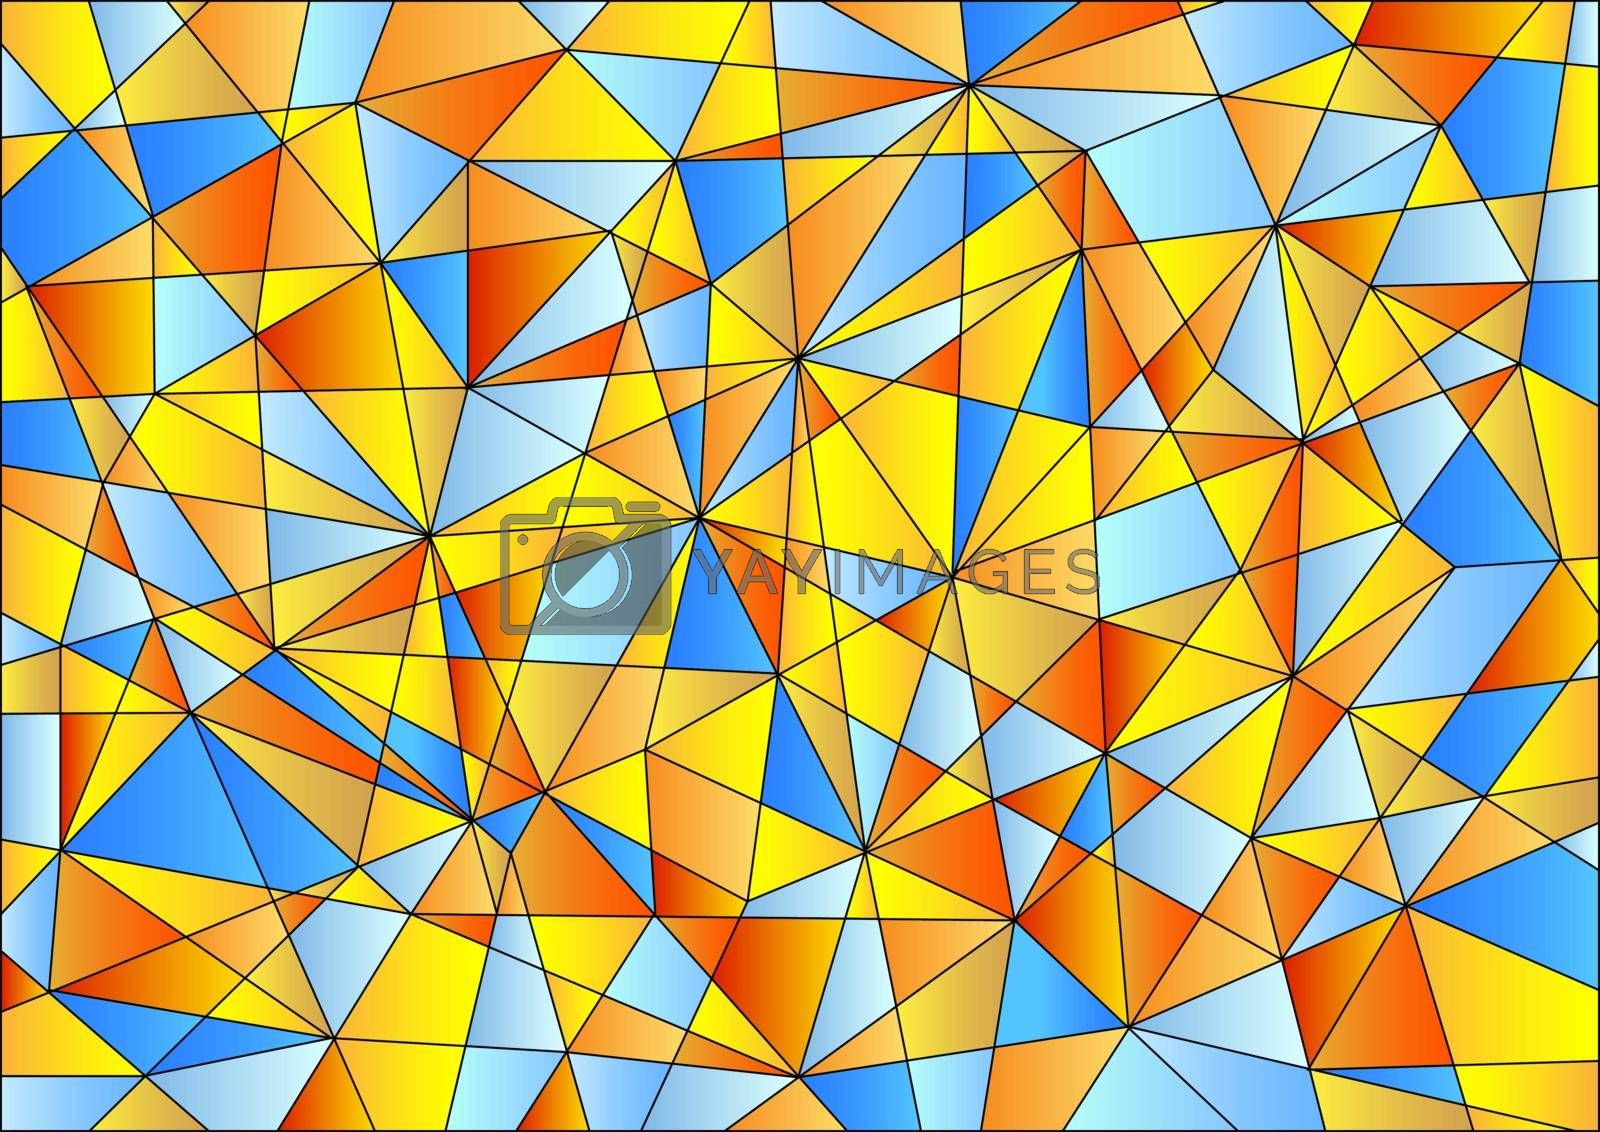 Abstract geometric pattern in happy colors by Frank11